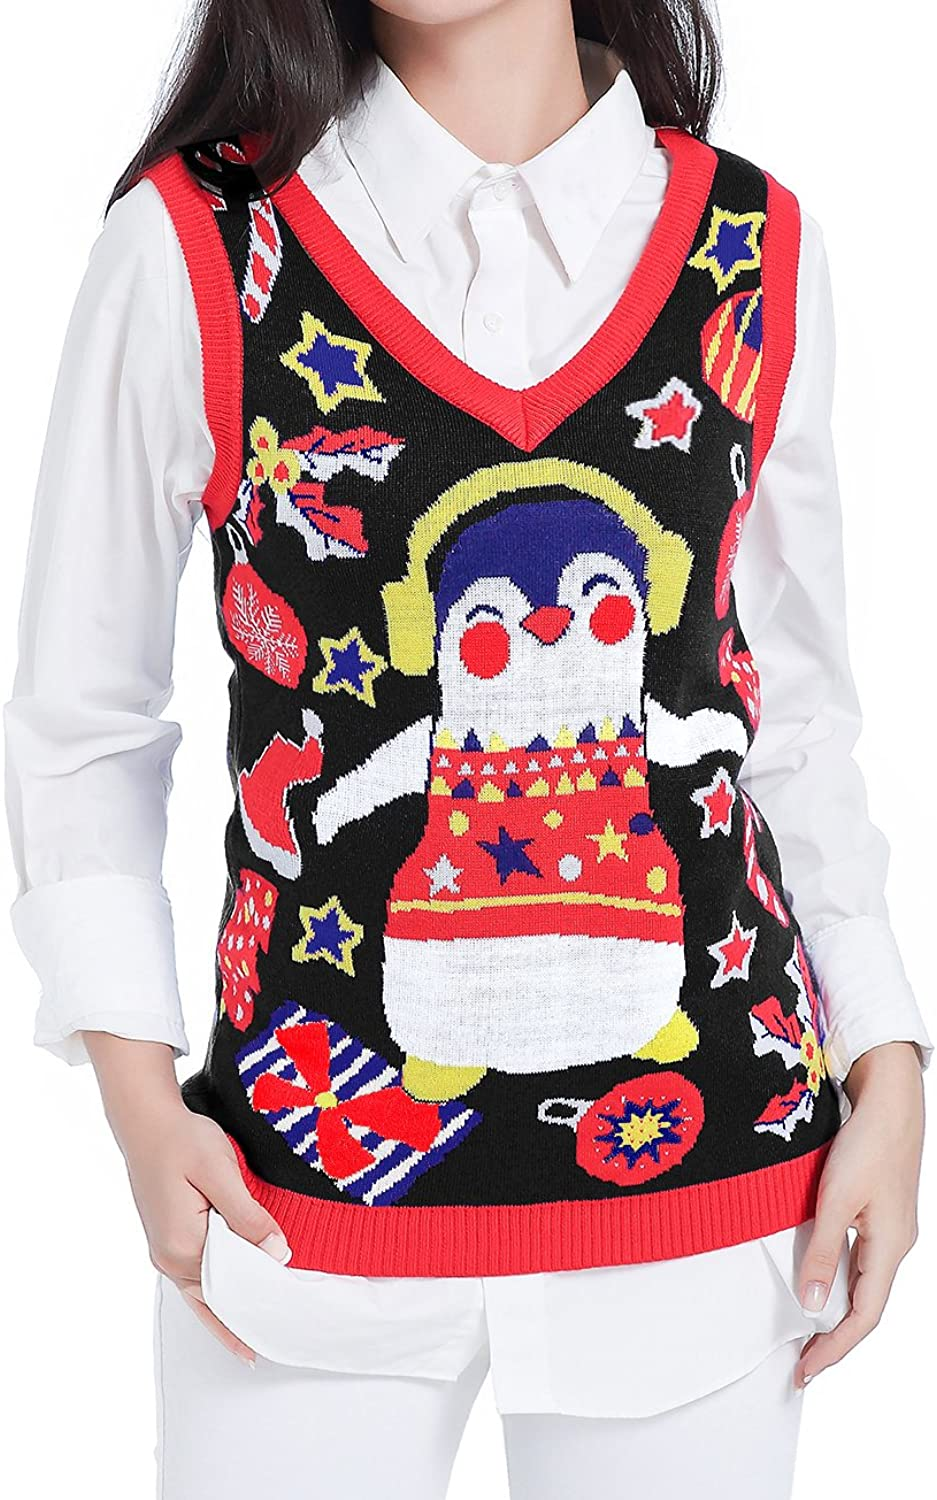 Ugly Christmas Sweater, V28 Women Girl Cute Vintage Knit Xmas Pulli Sweater Vest